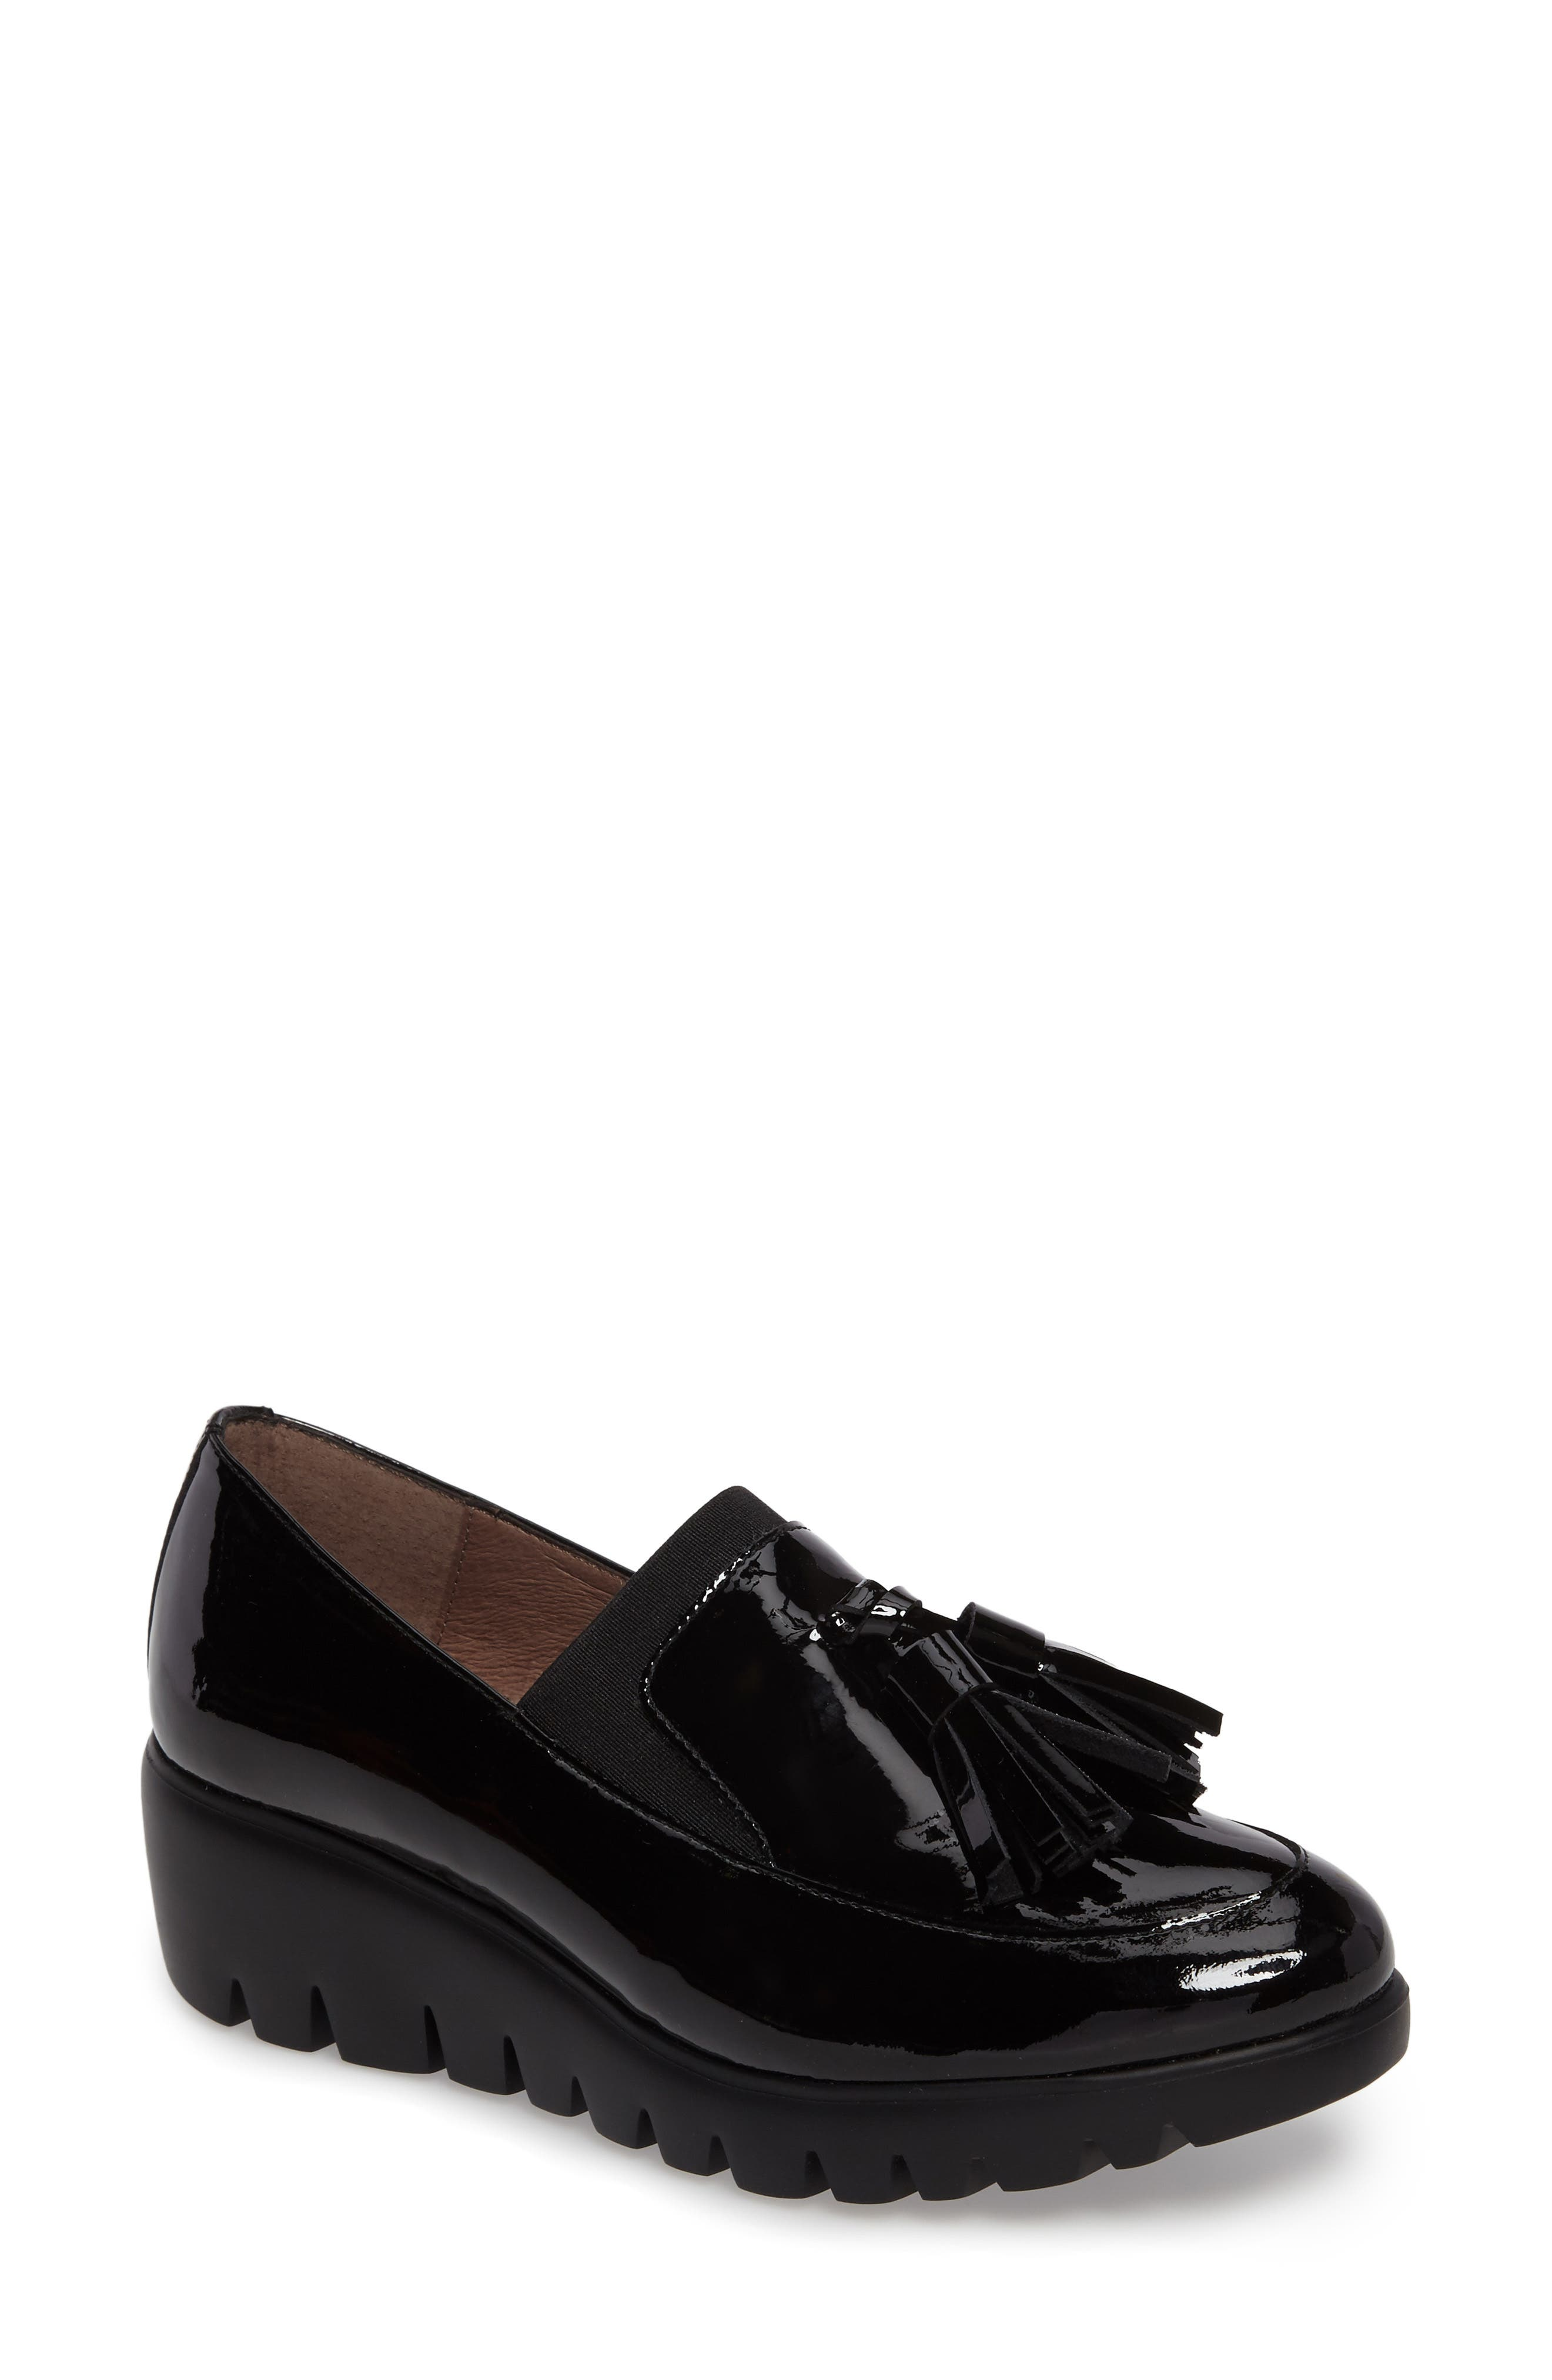 Main Image - Wonders Talla Loafer Wedge (Women)